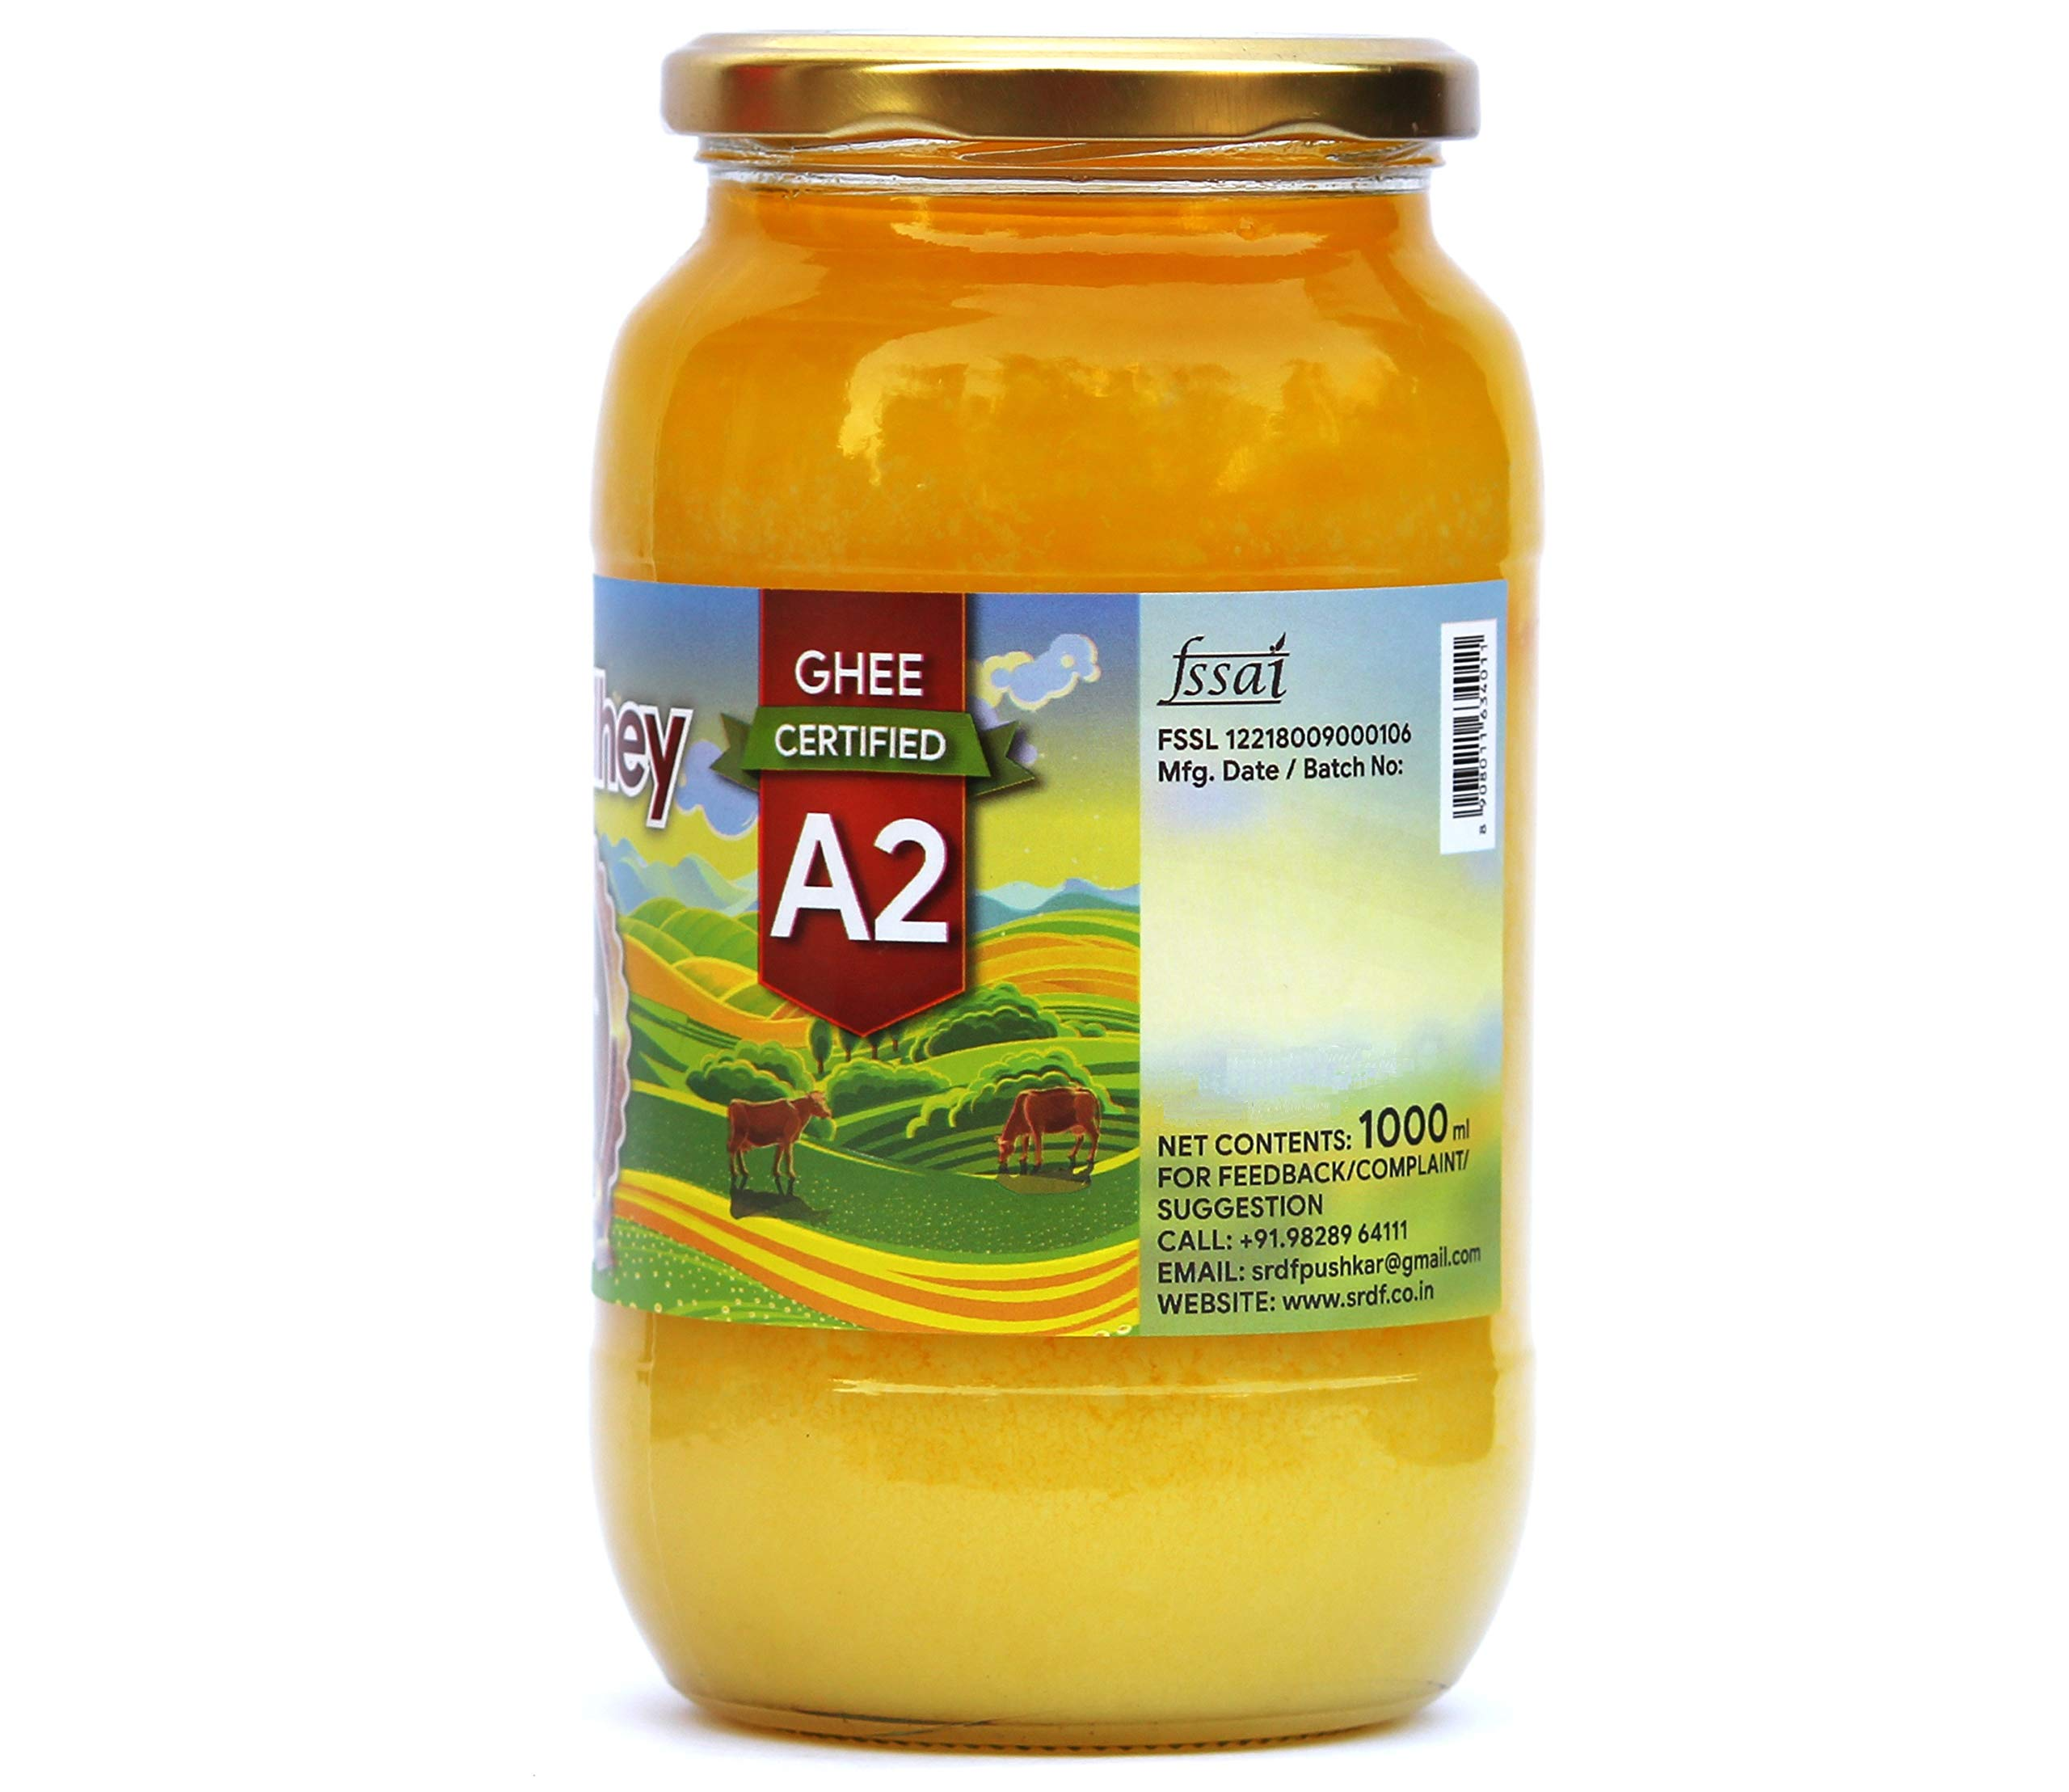 Shree Radhey Certified A2 Gir Cow Ghee - Gluten Free - (Traditionaly Hand Churned) 1000 ml by Shree Radhey (Image #2)